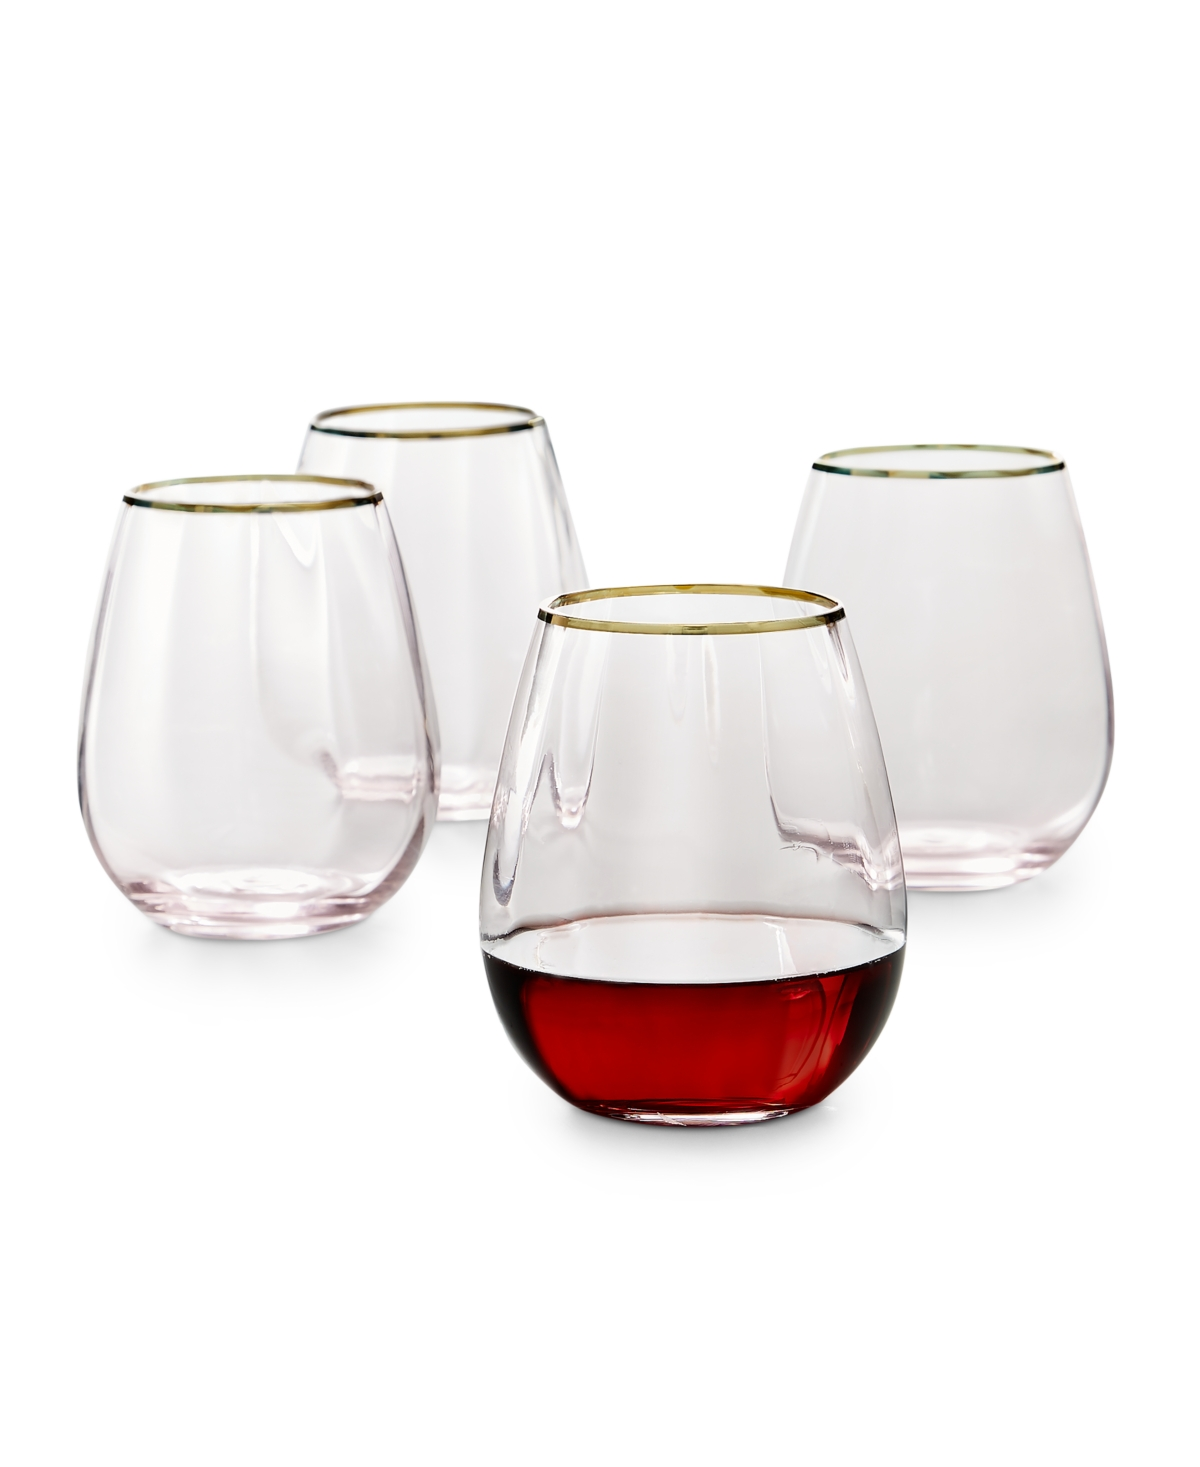 Martha Stewart Collection Blush Optic Stemless Wine Glasses, Set of 4, Created for Macy's